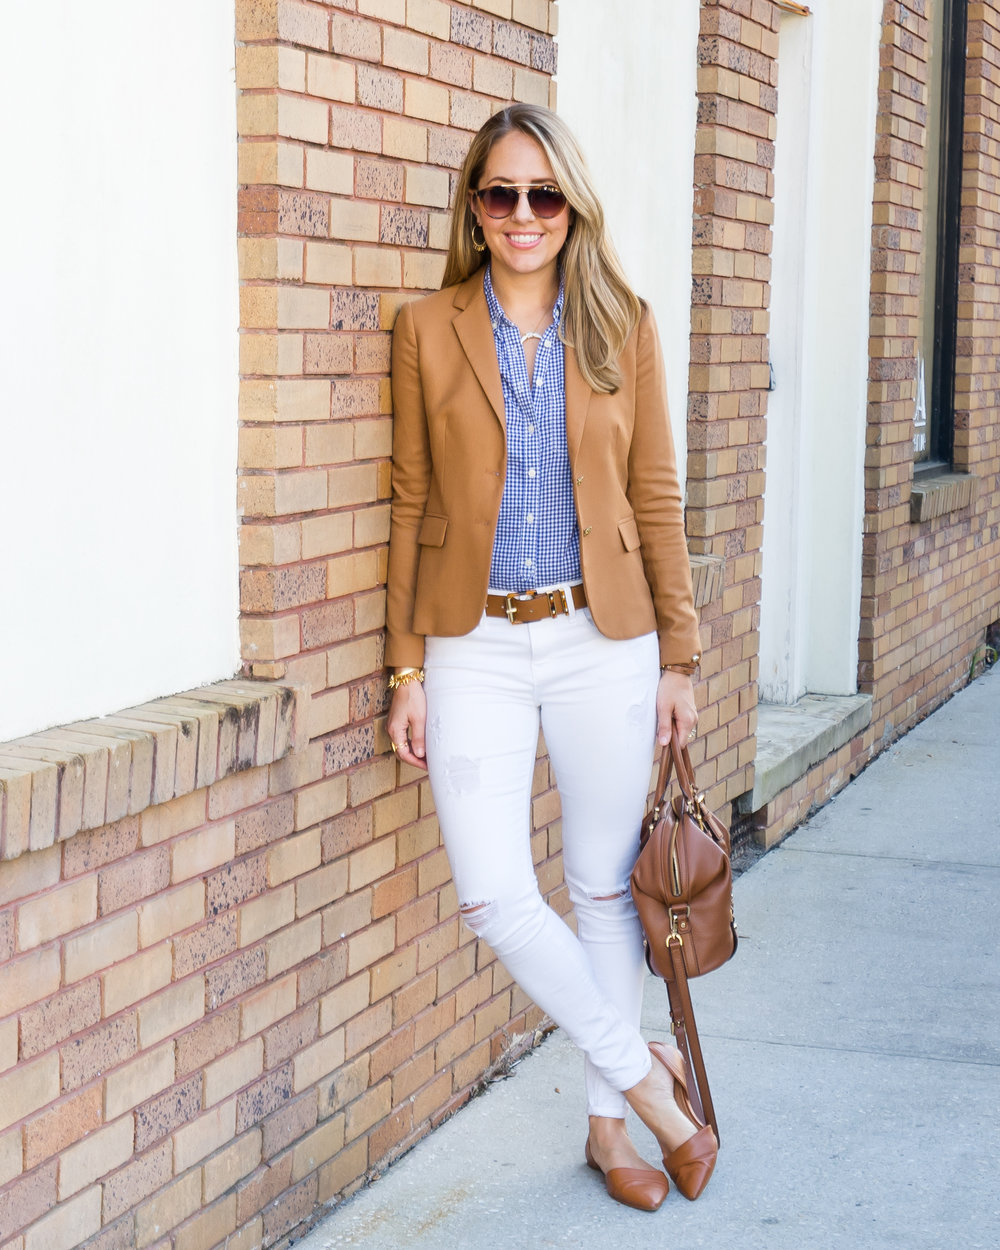 Camel blazer, gingham top, white jeans